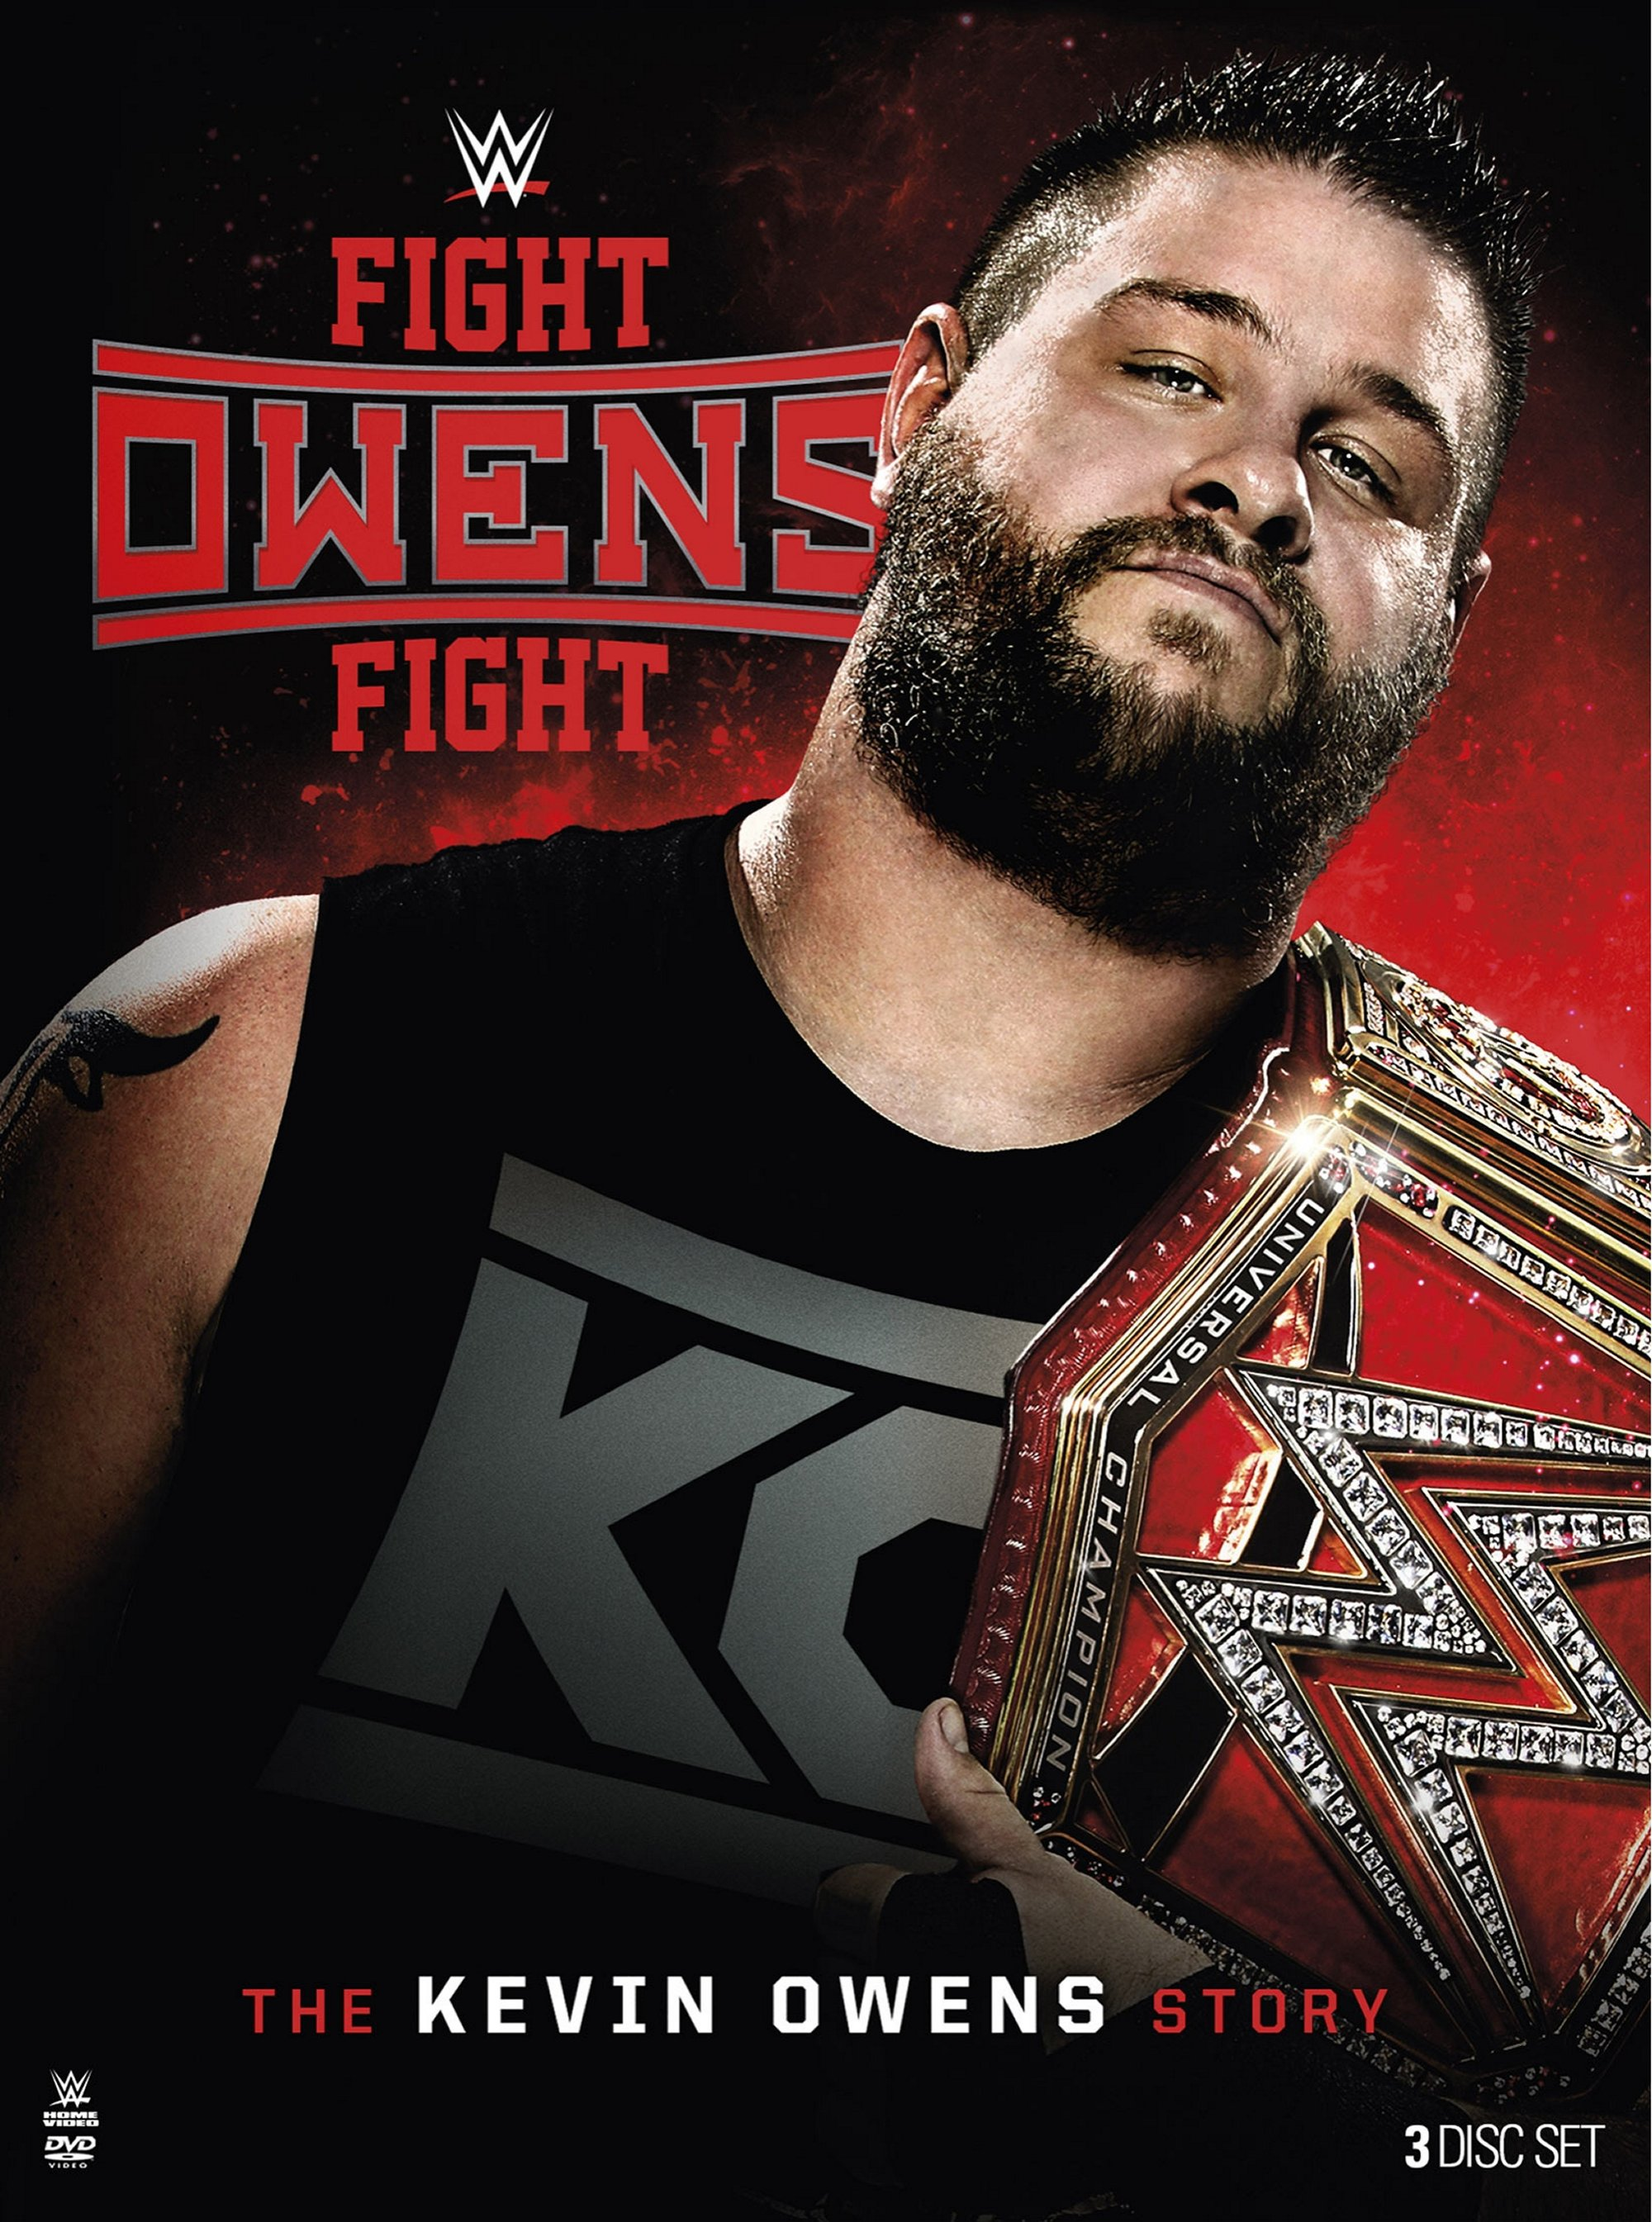 WWE: Fight Owens Fight: The Kevin Owens Story by WARNER HOME VIDEO